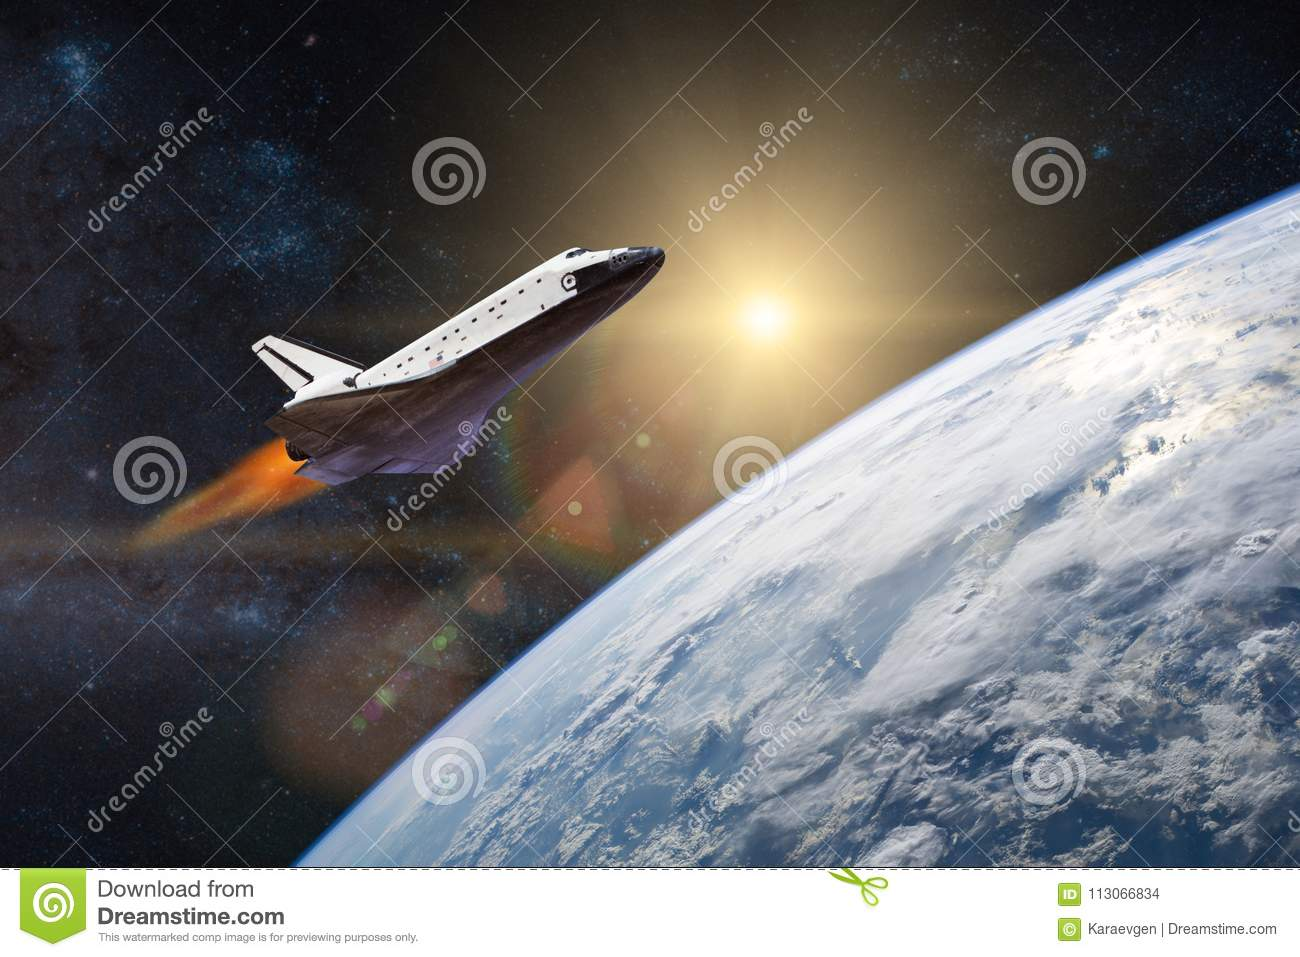 Blue planet Earth. Space shuttle taking off on a mission.